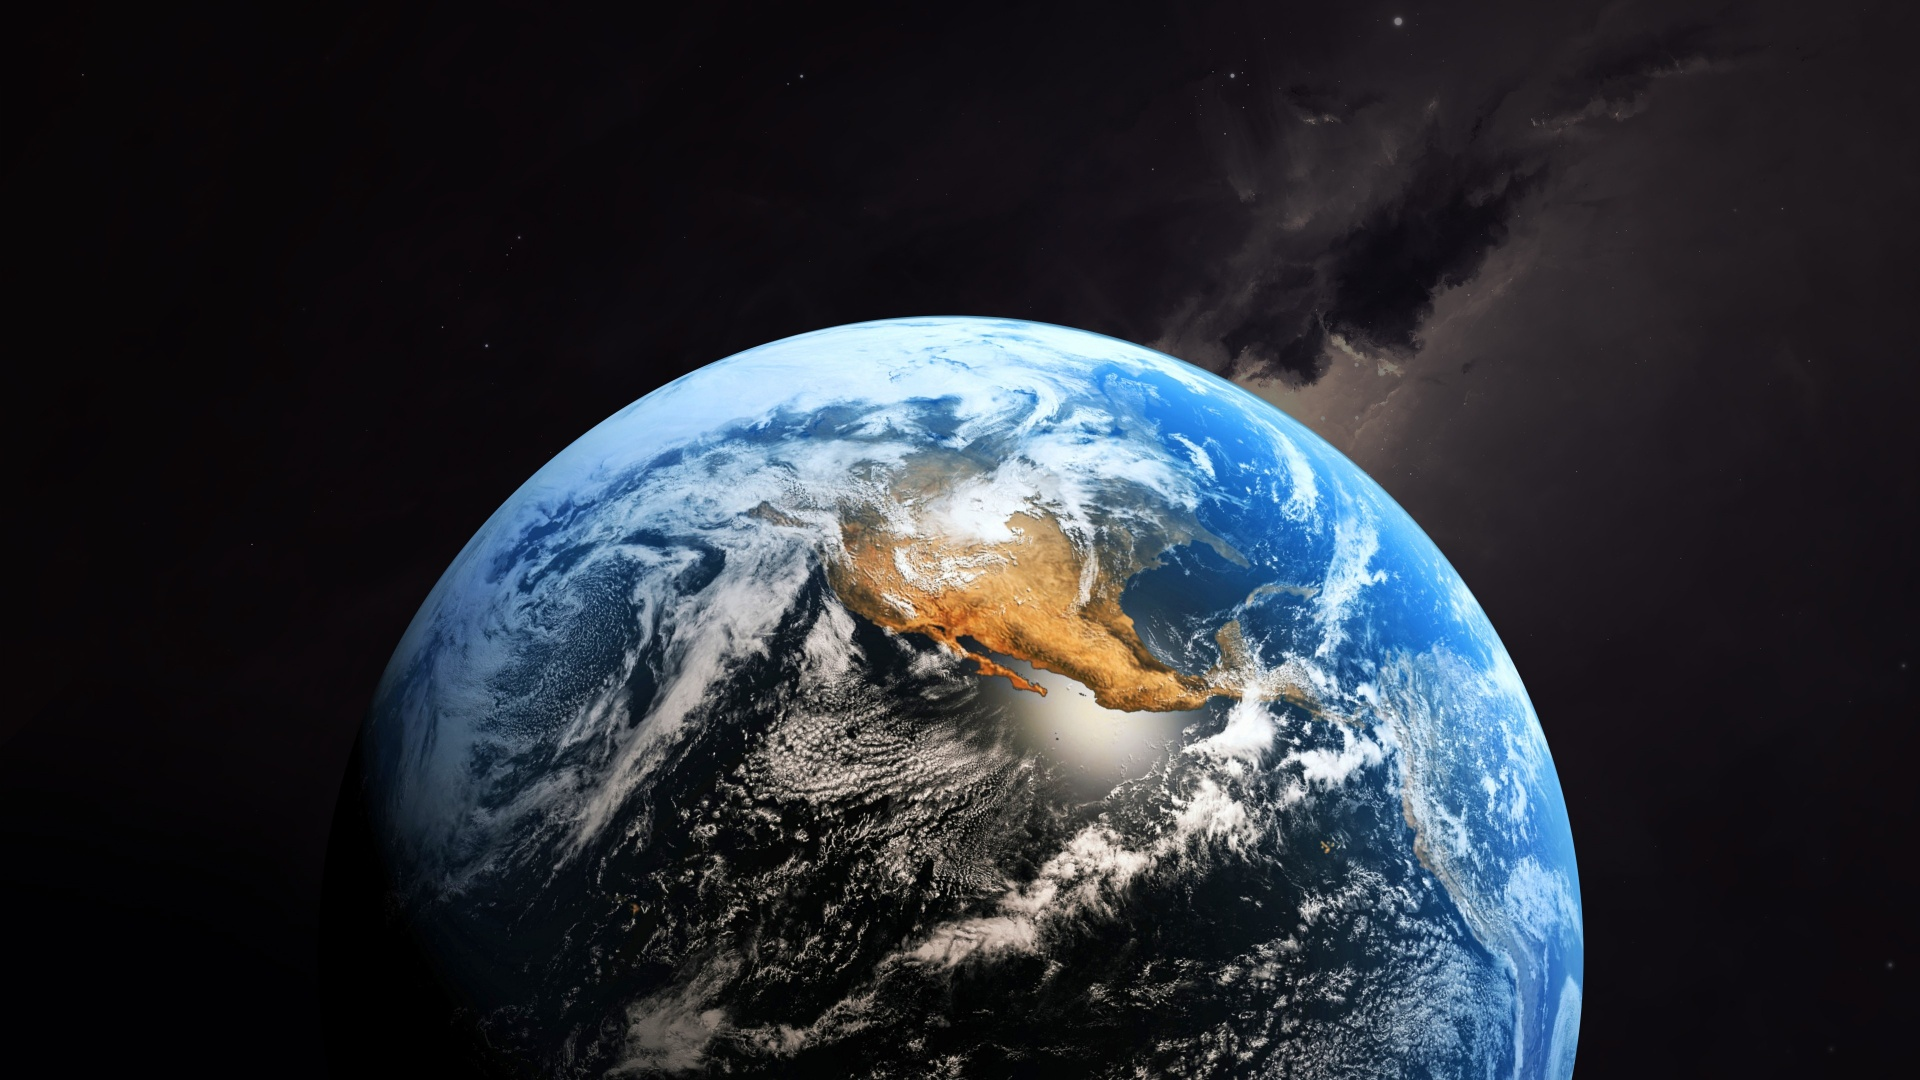 planet earth wallpapers in jpg format for free download